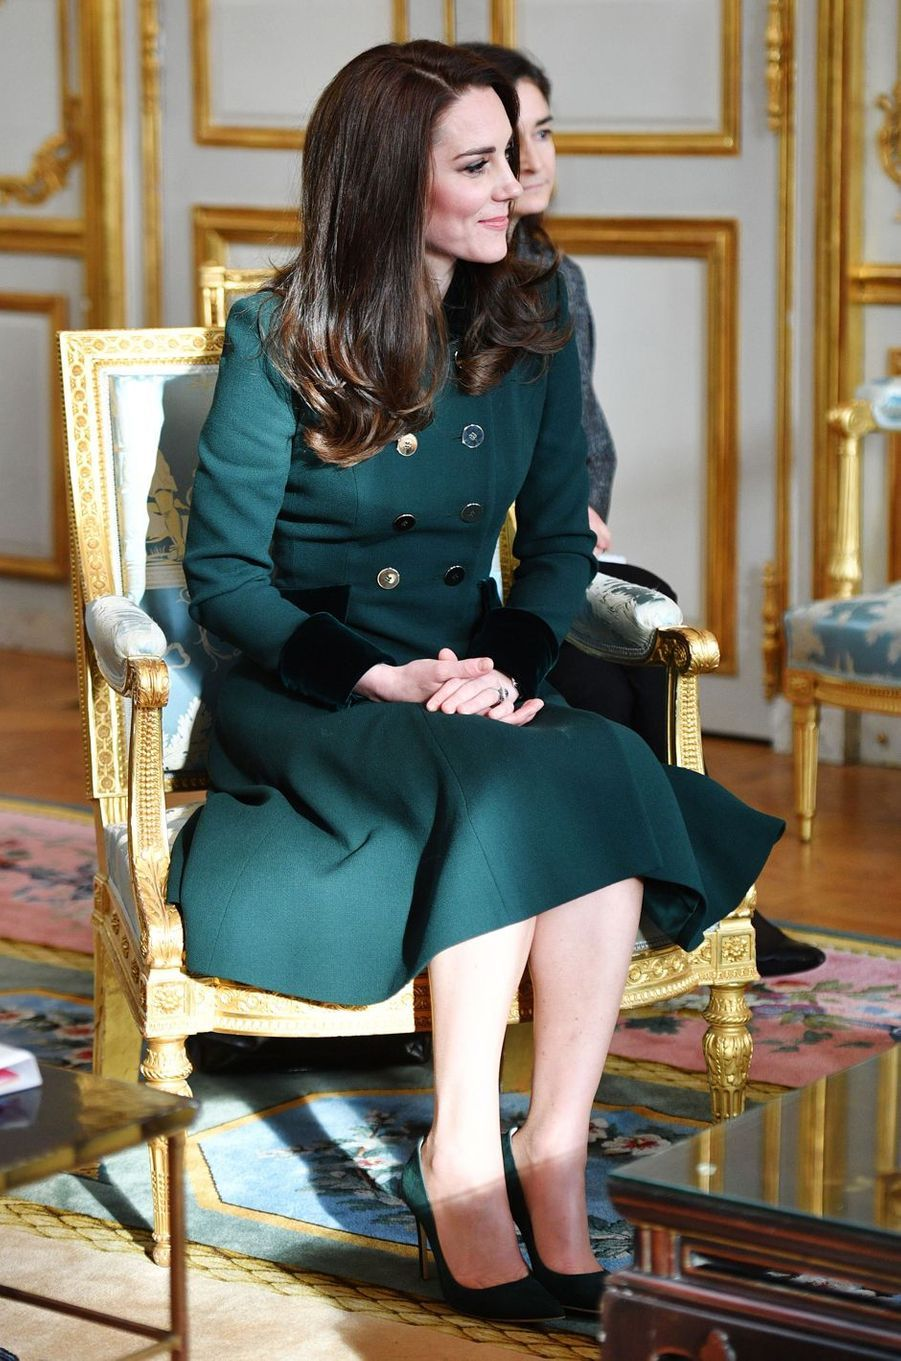 La duchesse de Cambridge, Kate Middleton, à Paris le 17 mars 2017